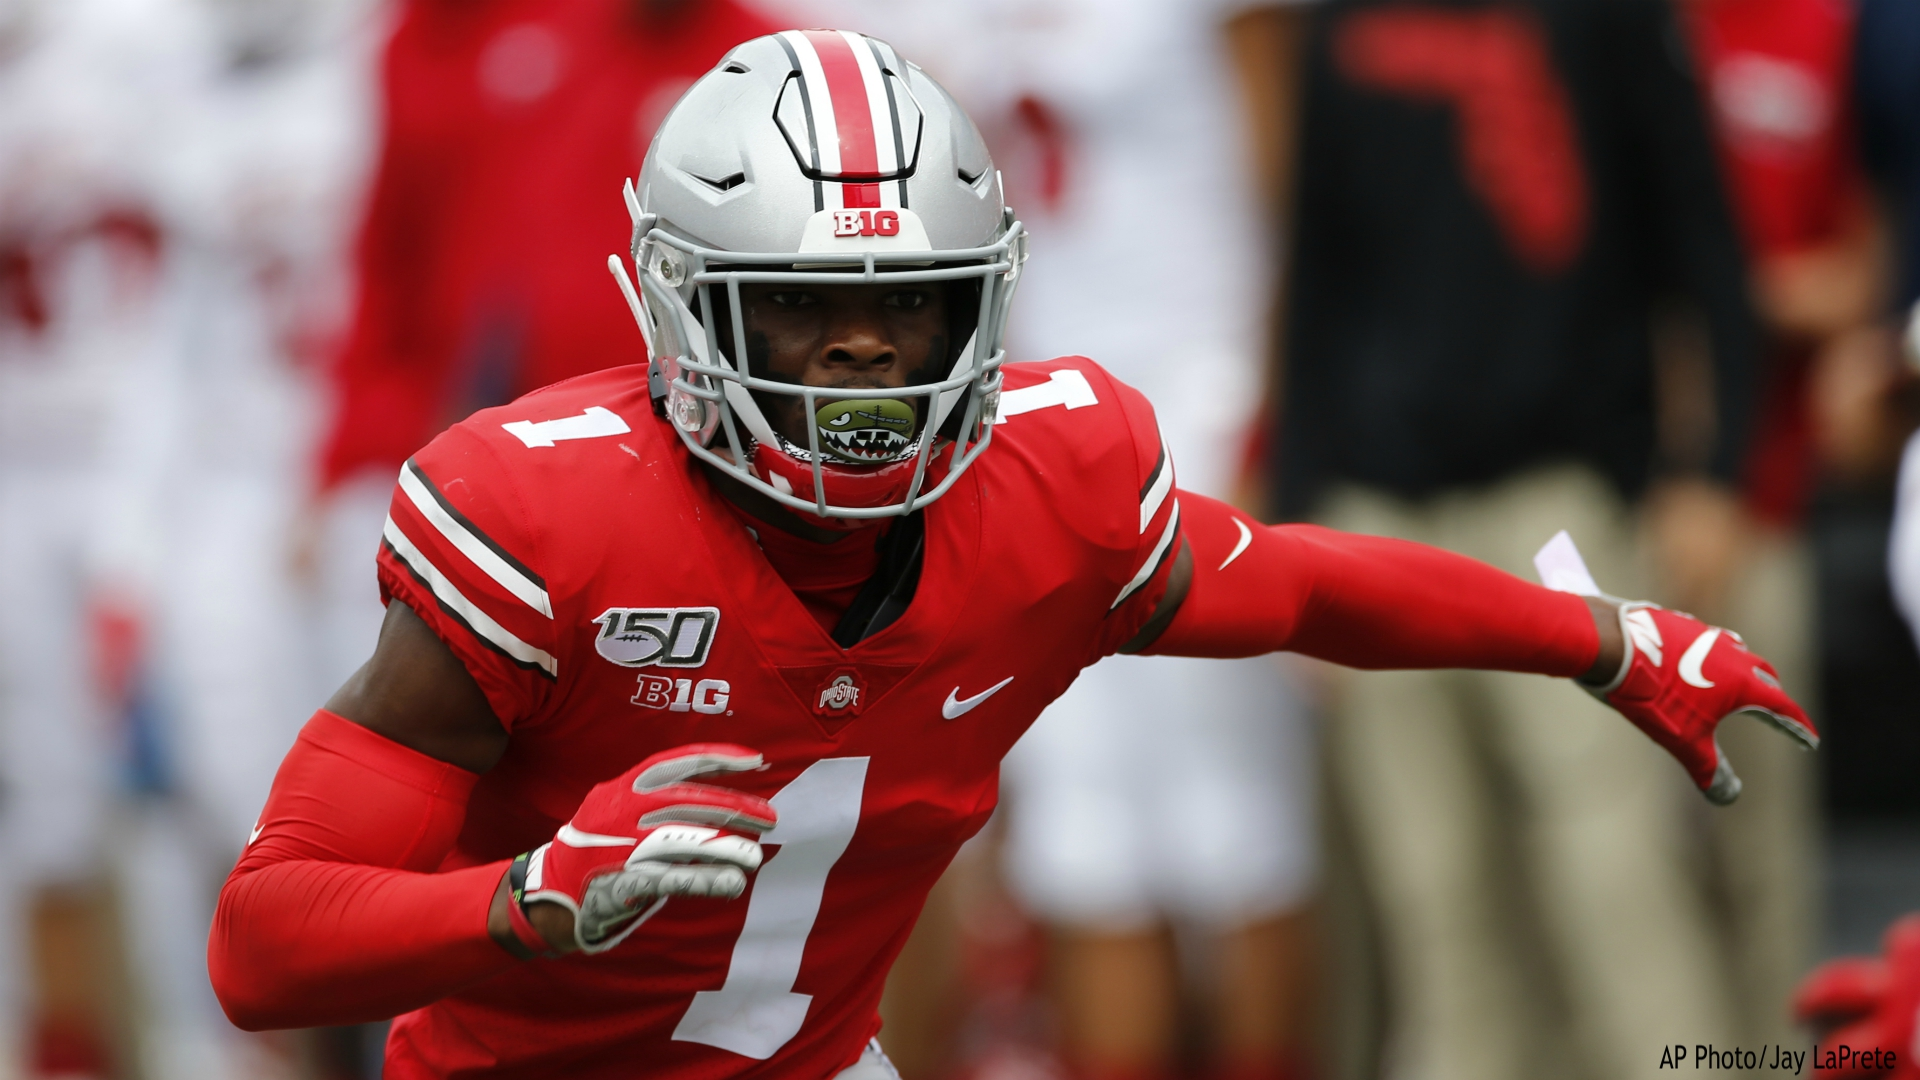 FILE - This is an Aug. 31, 2019, file photo showing Ohio State defensive back Jeff Okudah playing against Florida Atlantic in an NCAA college football game in Columbus, Ohio. Okudah is a possible pick at the NFL Draft which runs Thursday, April 23, 2020, thru Saturday, April 25. (AP Photo/Jay LaPrete, File)